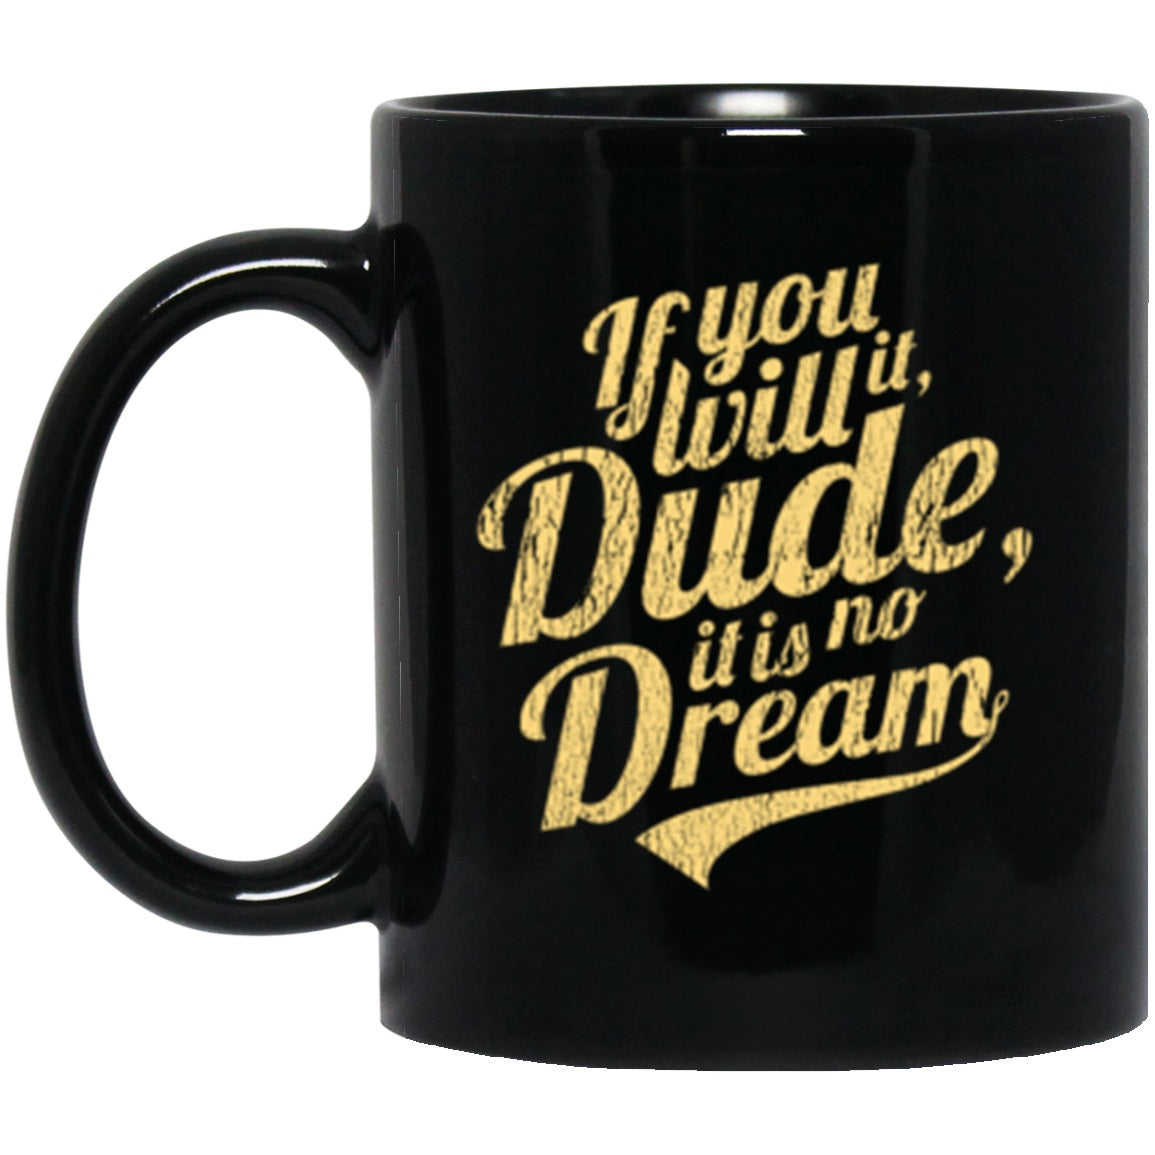 Drinkware - Theodore Herzl 2 Mug 11oz (2-sided)